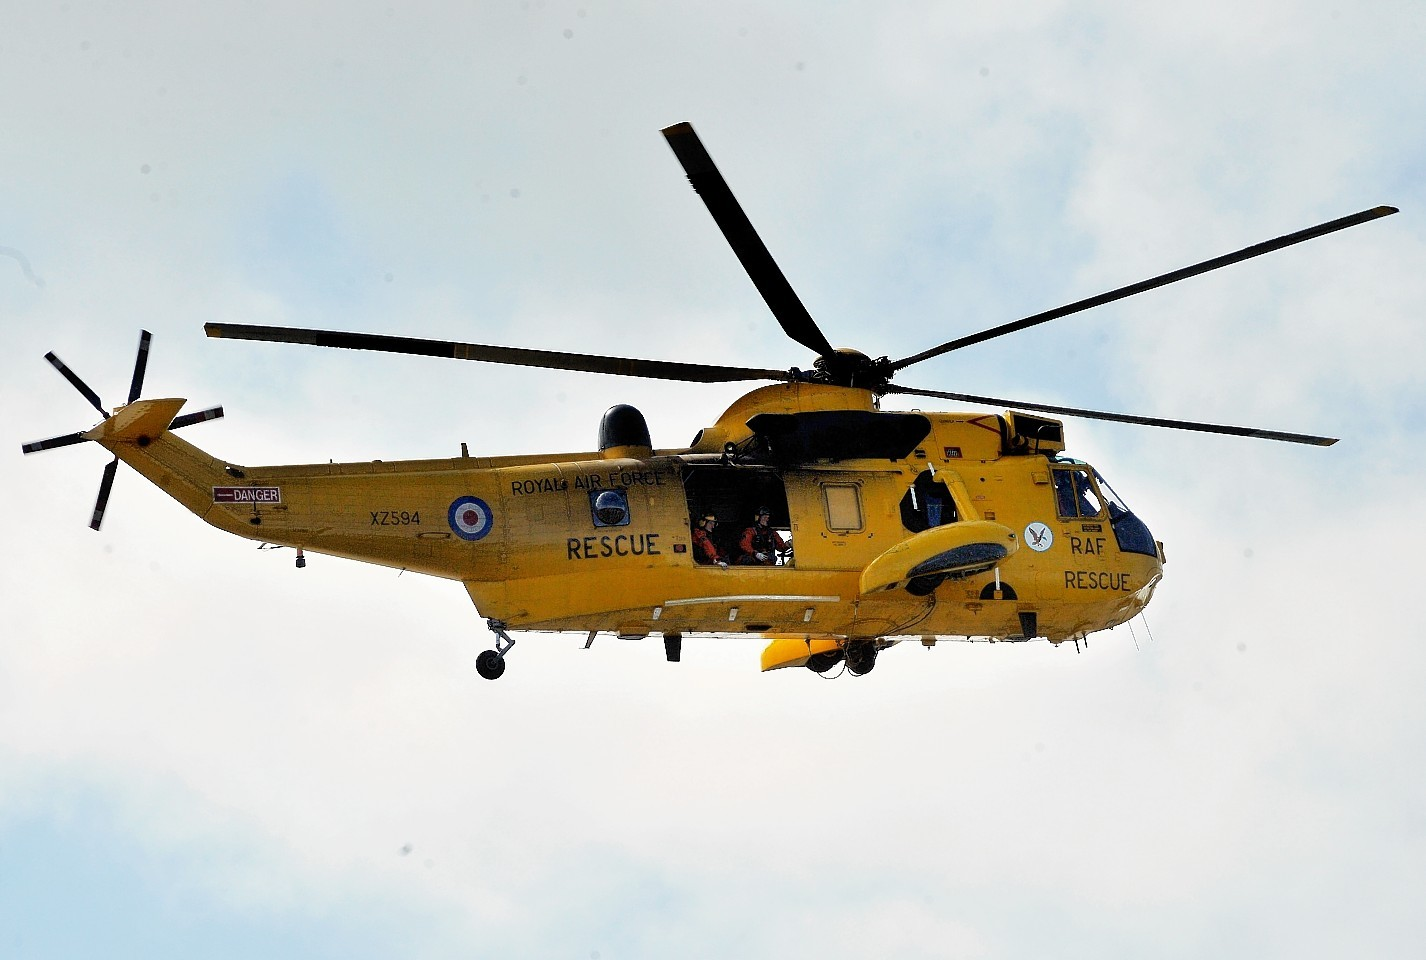 The man was transported to Aberdeen Royal Infirmary by helicopter